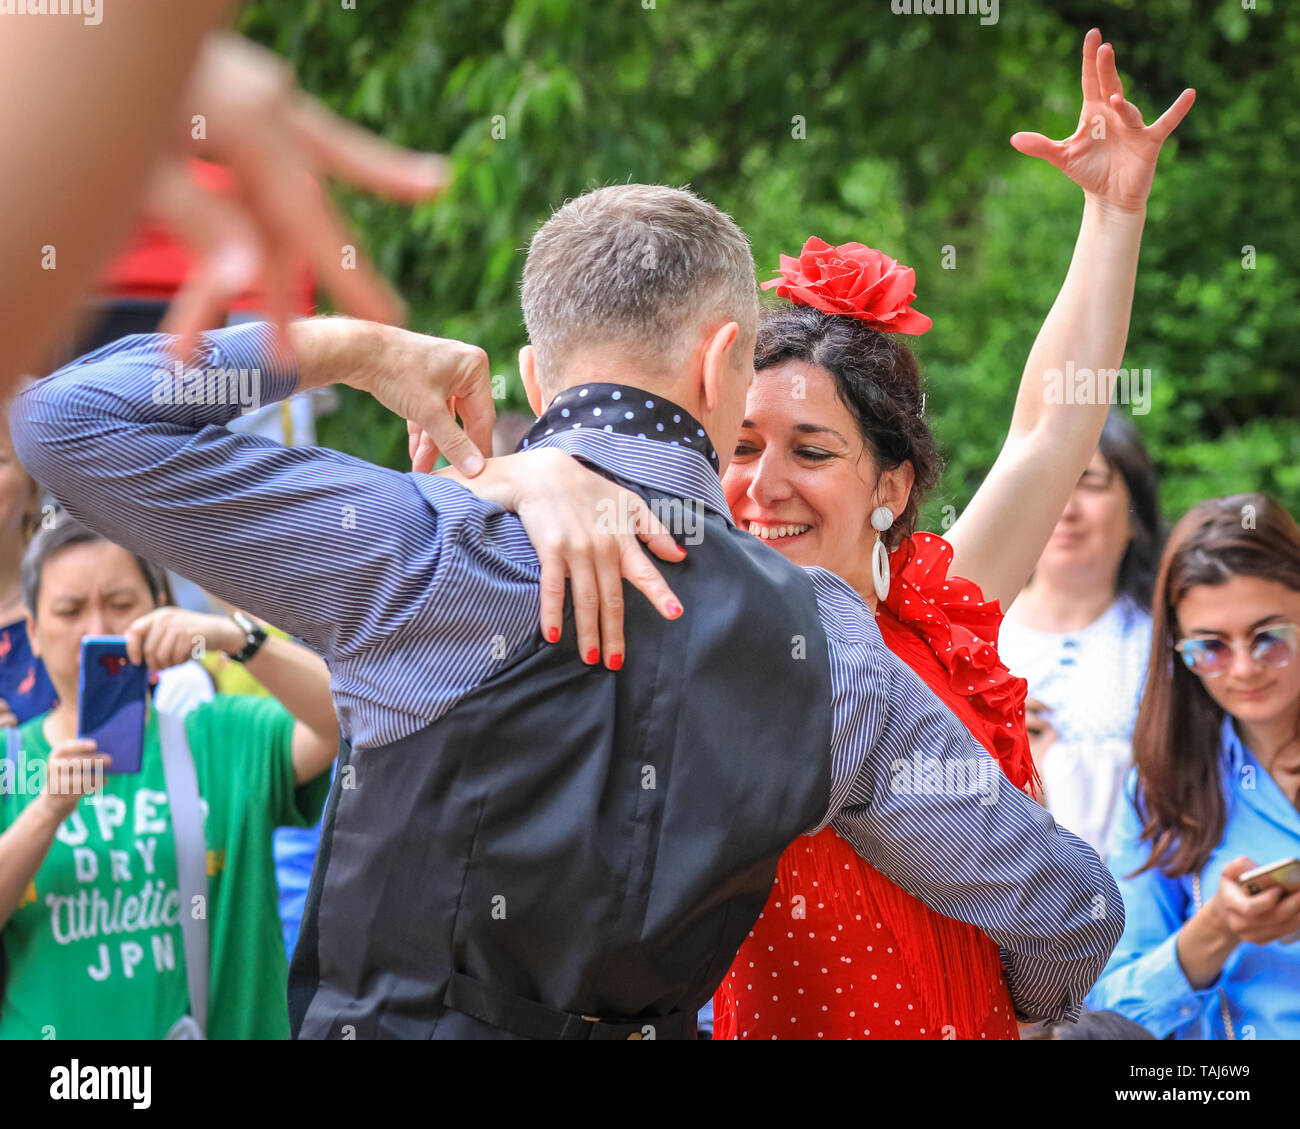 South Bank, London, UK - 25th May 2019. A passionate flamenco pairing. Spectators and dance enthusiasts meet with dancers from the Illusion Flamenco School in London for some flamenco dancing. The Feria de Londres is a free festival on London's South Bank presenting Spanish culture, dance, music, wine and food from May 24-26. Credit: Imageplotter/Alamy Live News - Stock Image